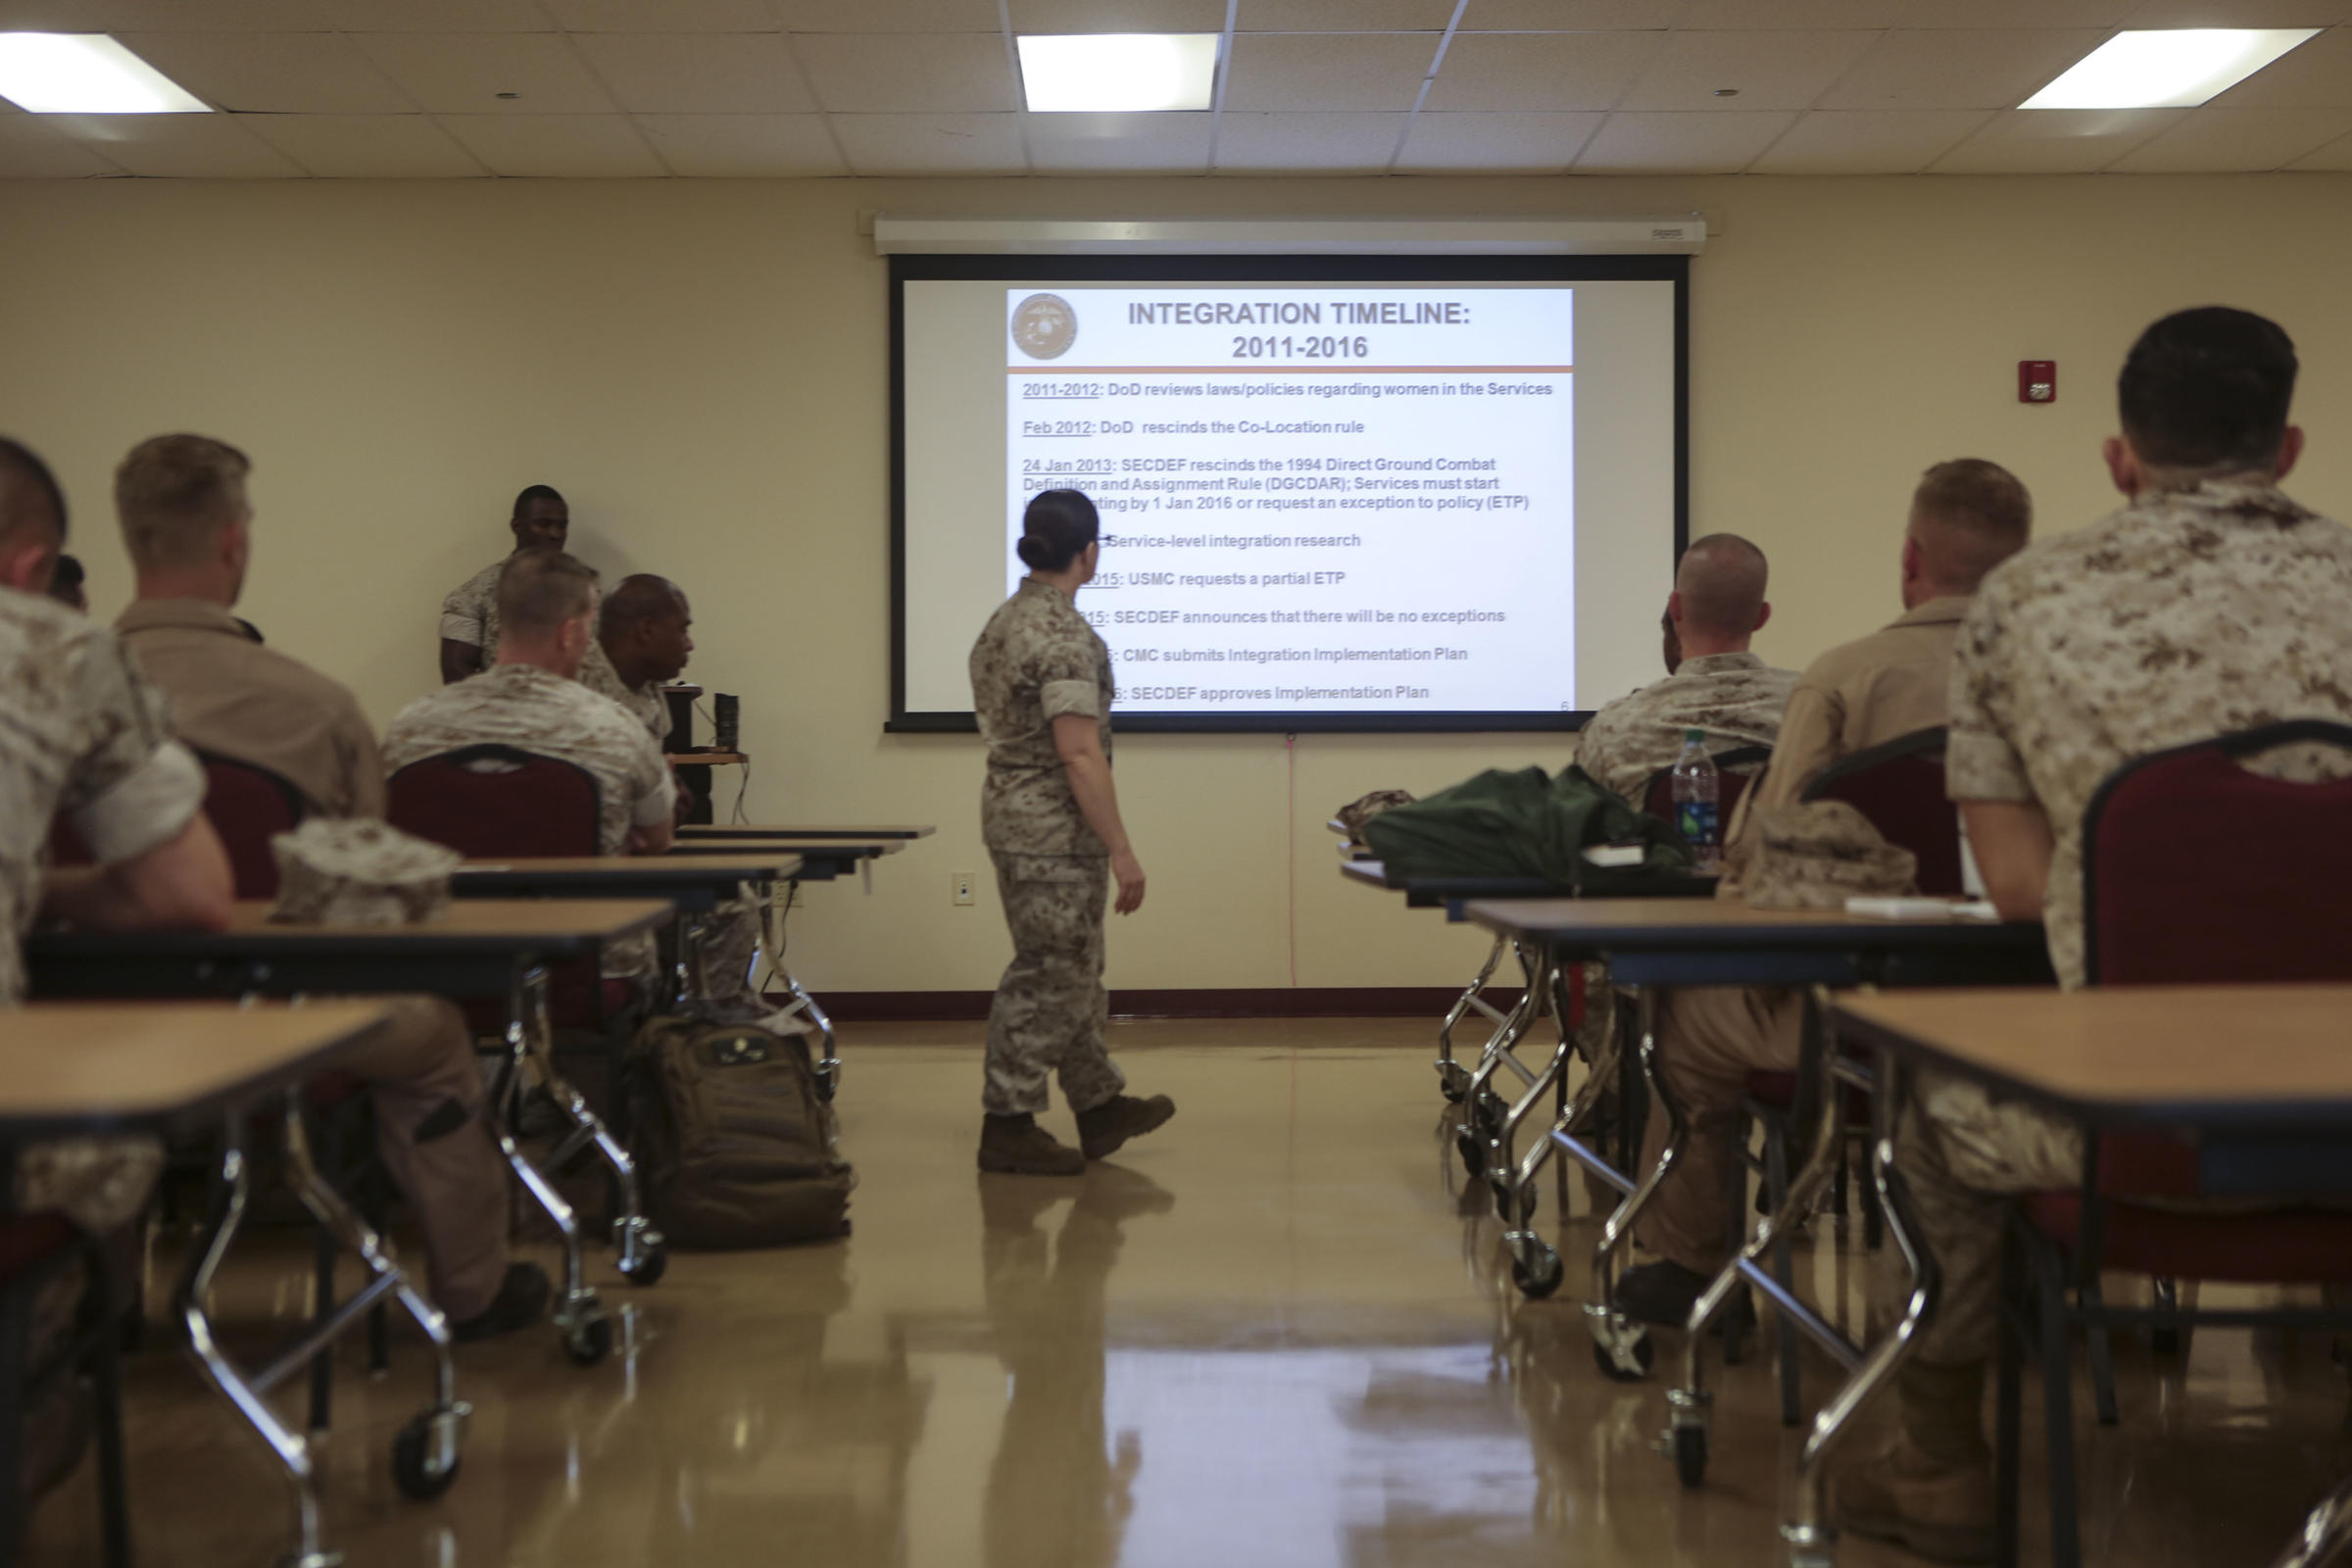 photo scandal hampers effort to improve marine corps culture major misty posey leads a 2016 class for marine corps leaders about integrating women into combat roles